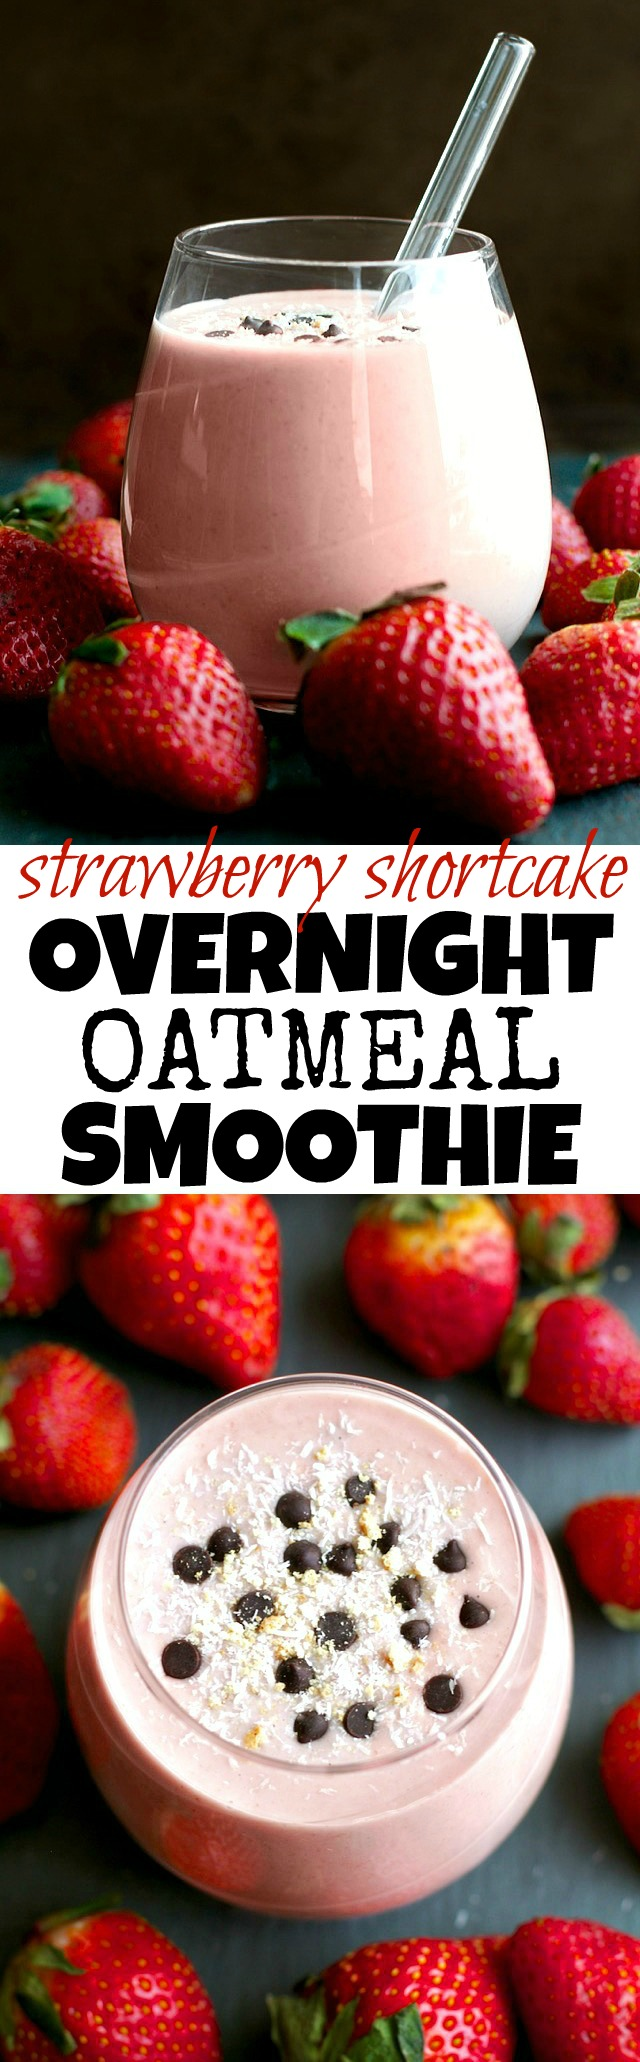 You've never had oatmeal like this before! This thick and creamy Strawberry Shortcake Overnight Oatmeal Smoothie combines that stick-to-your-ribs feeling of a bowl of oats with the silky smooth texture of a smoothie! | runningwithspoons.com #vegan #glutenfree #SilkUnsweetened #ad